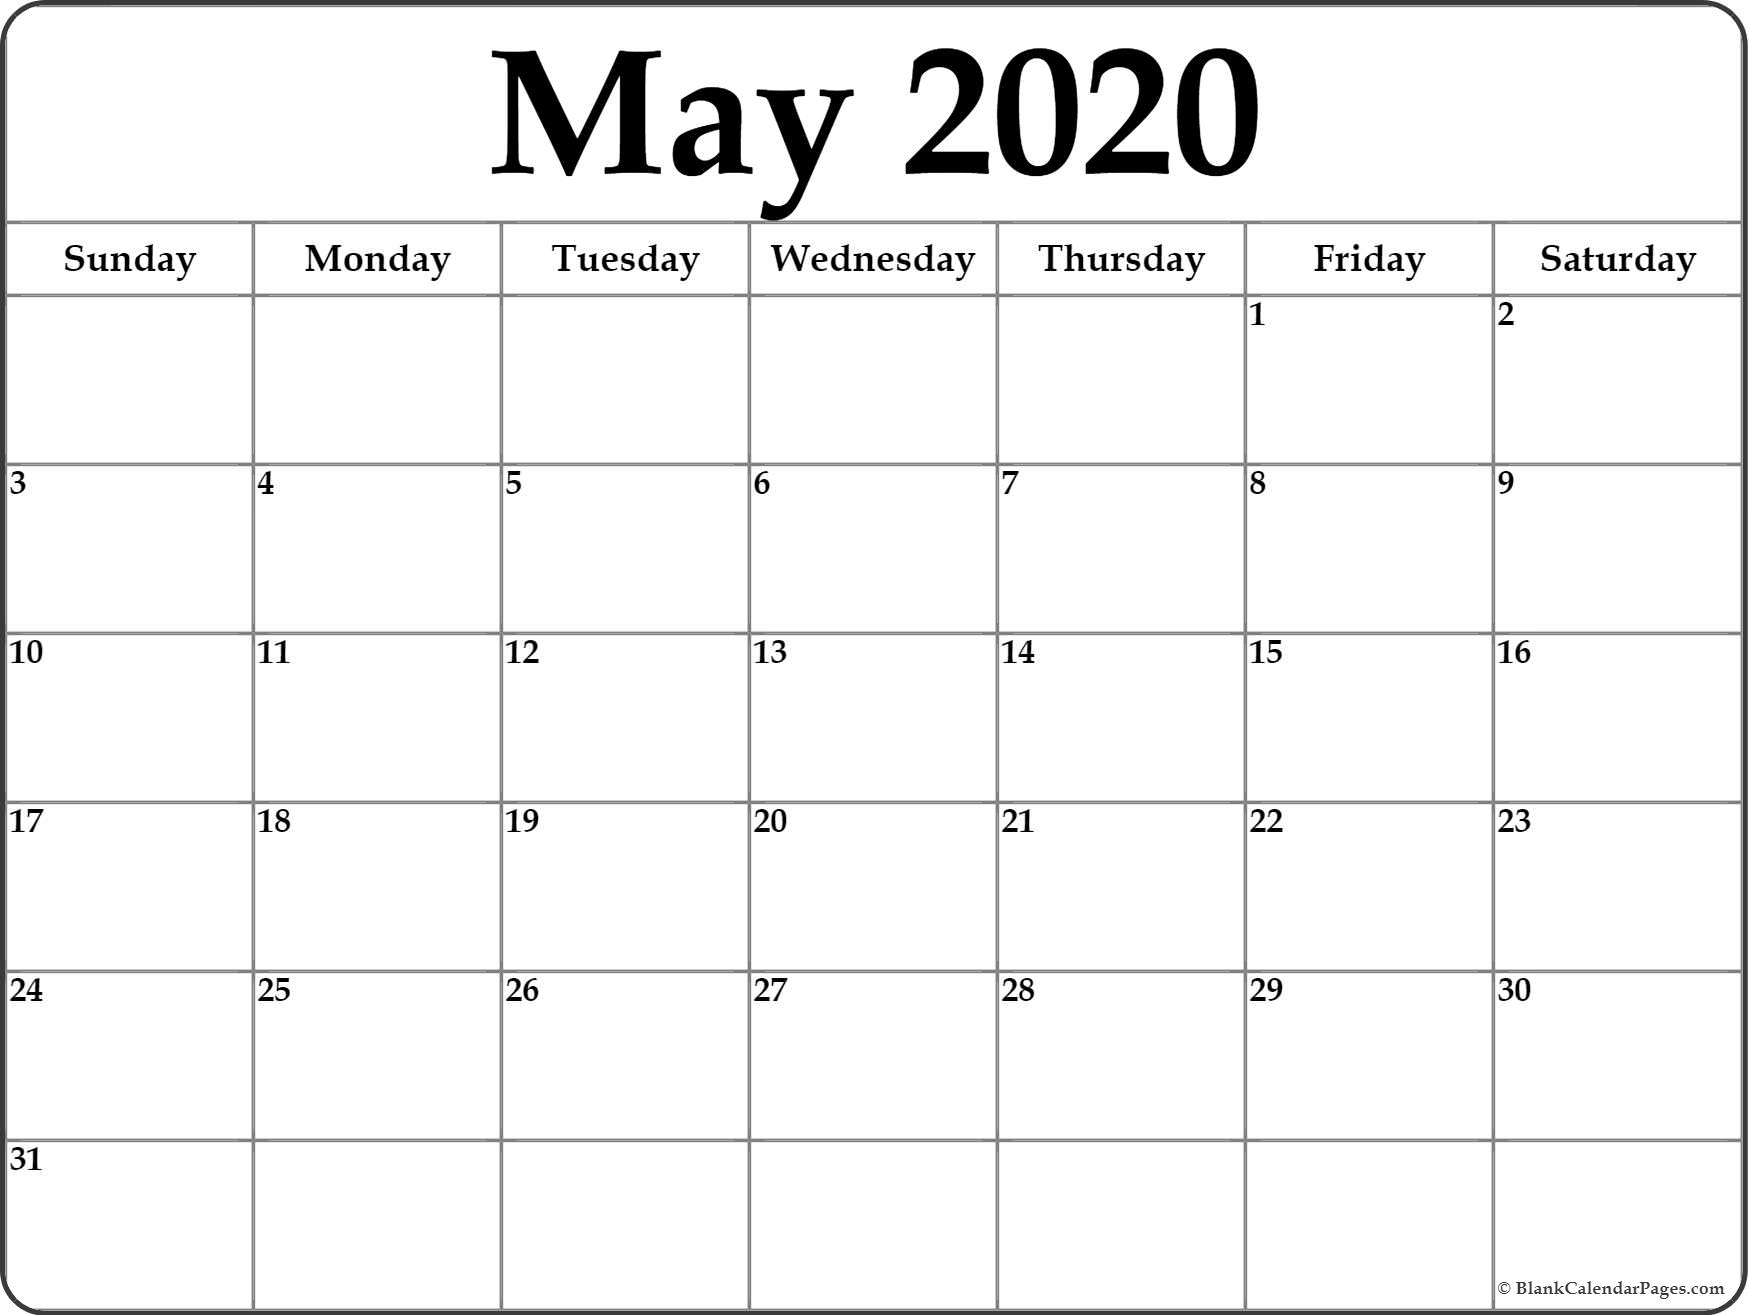 May 2020 Calendar | Free Printable Monthly Calendars with regard to Individual Monthly Printable Calendars For 2020 And 2021